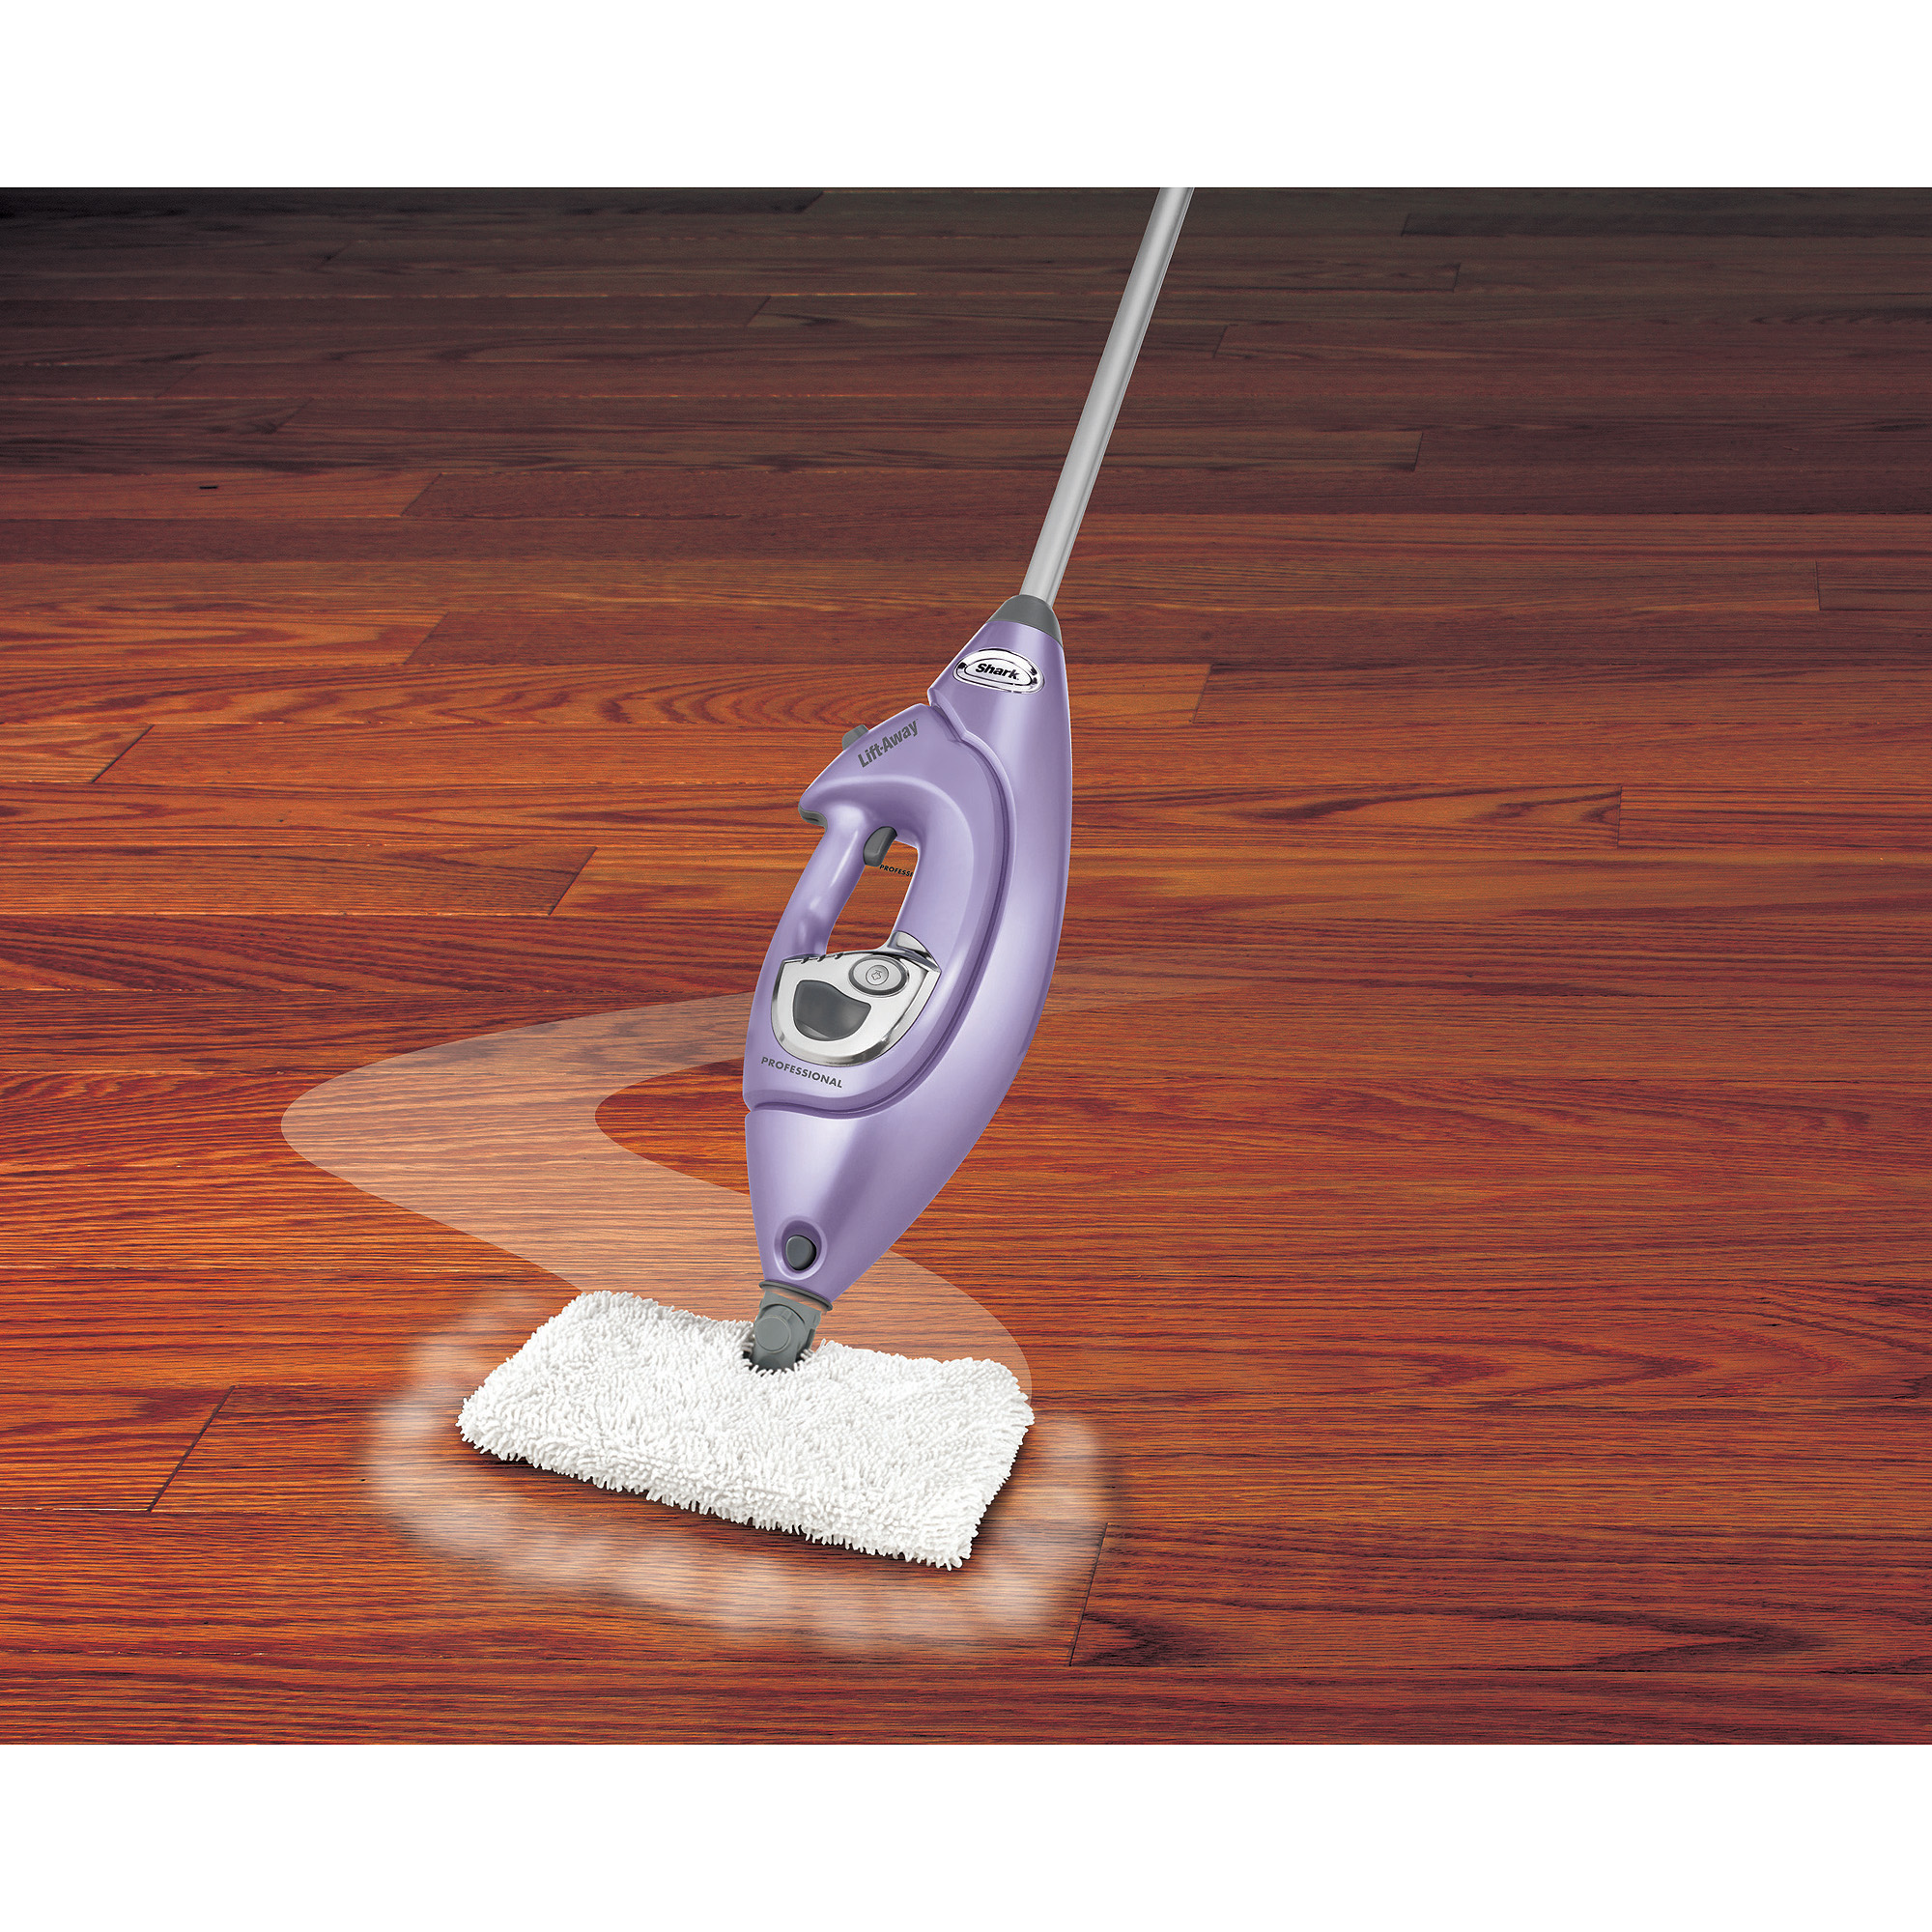 Can The Shark Steam Pocket Mop Be Used On Laminate